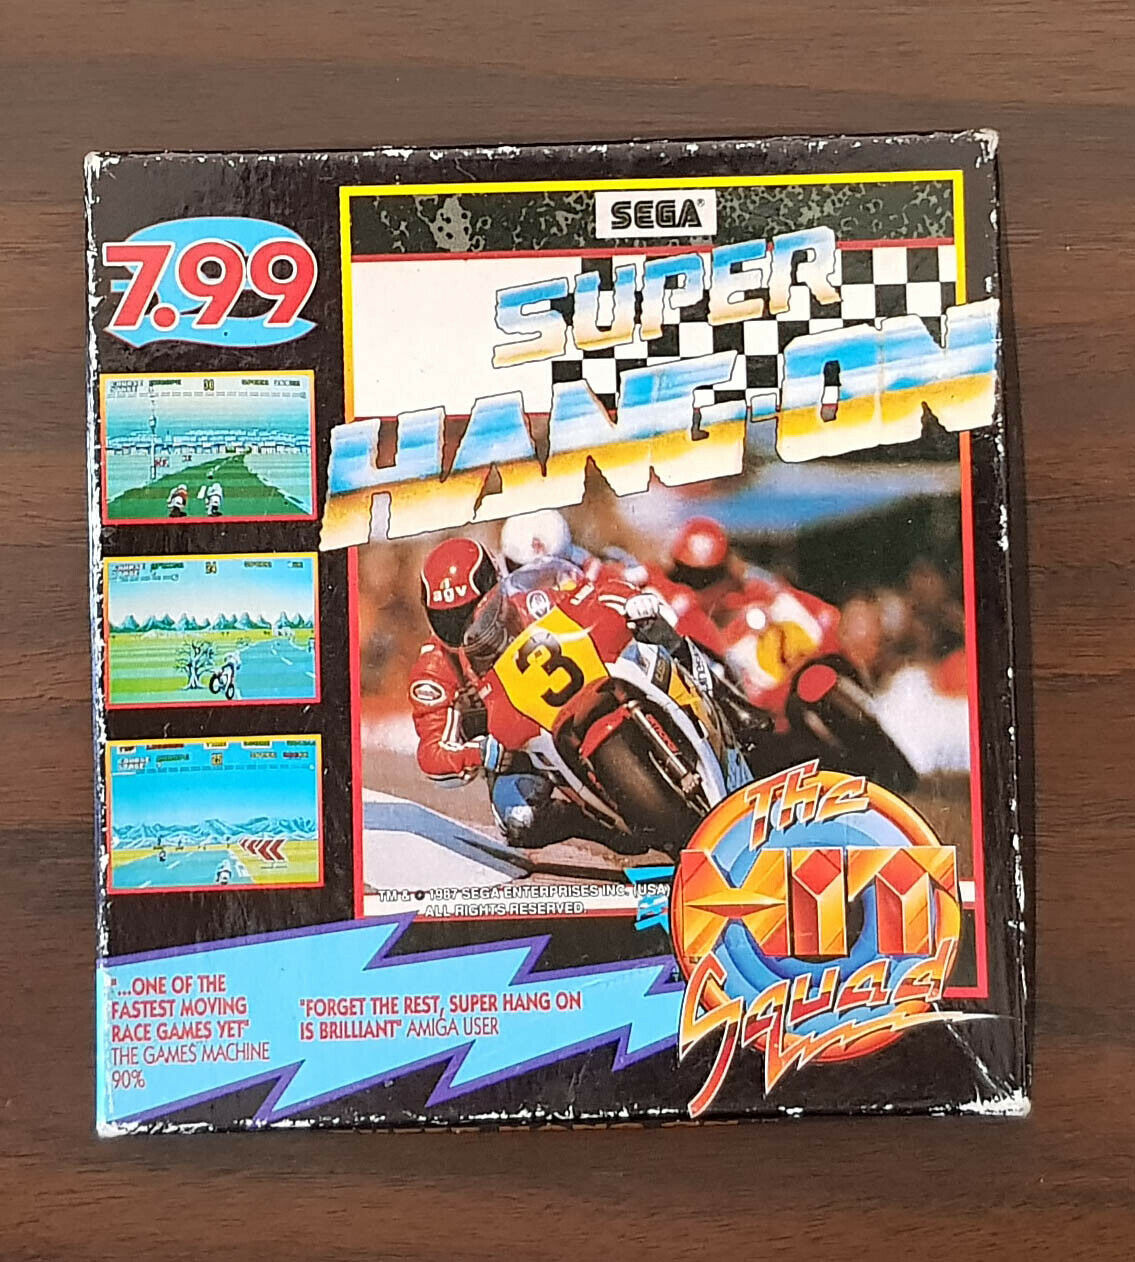 Computer Games - Super Hang-On A Motorcycle Game for the Commodore Amiga Computer